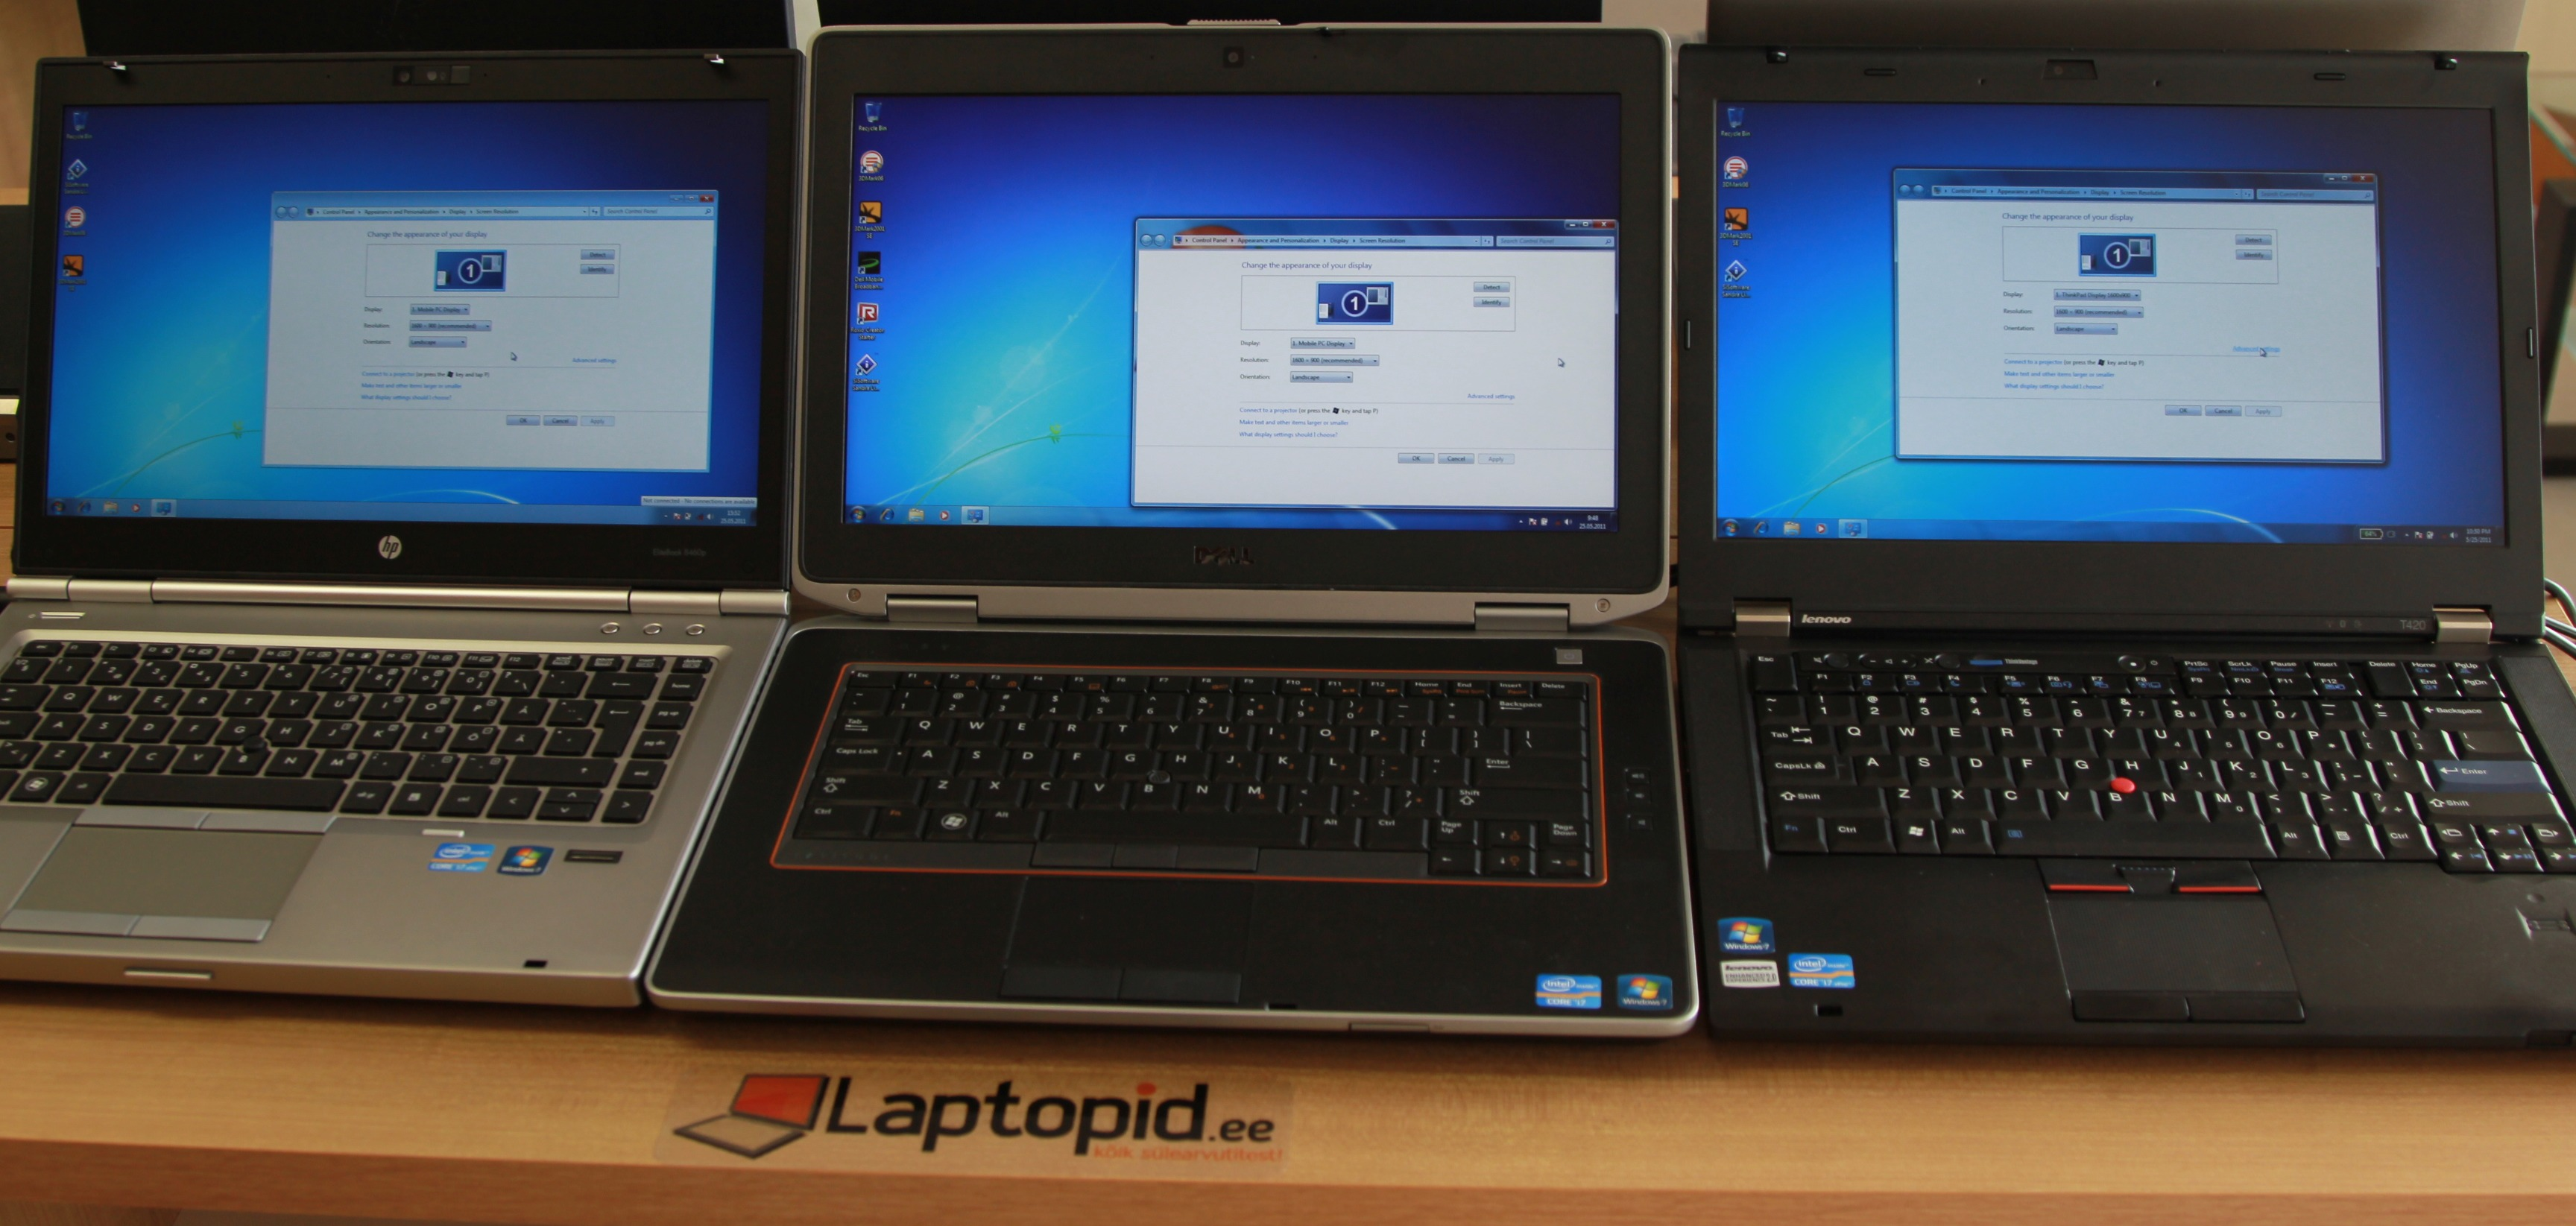 dell vs lenovo How does it compare to the readily-available lenovo yoga 720 15  how does  dell's xps 15 2-in-1 compare to lenovo's 15-inch yoga 720.